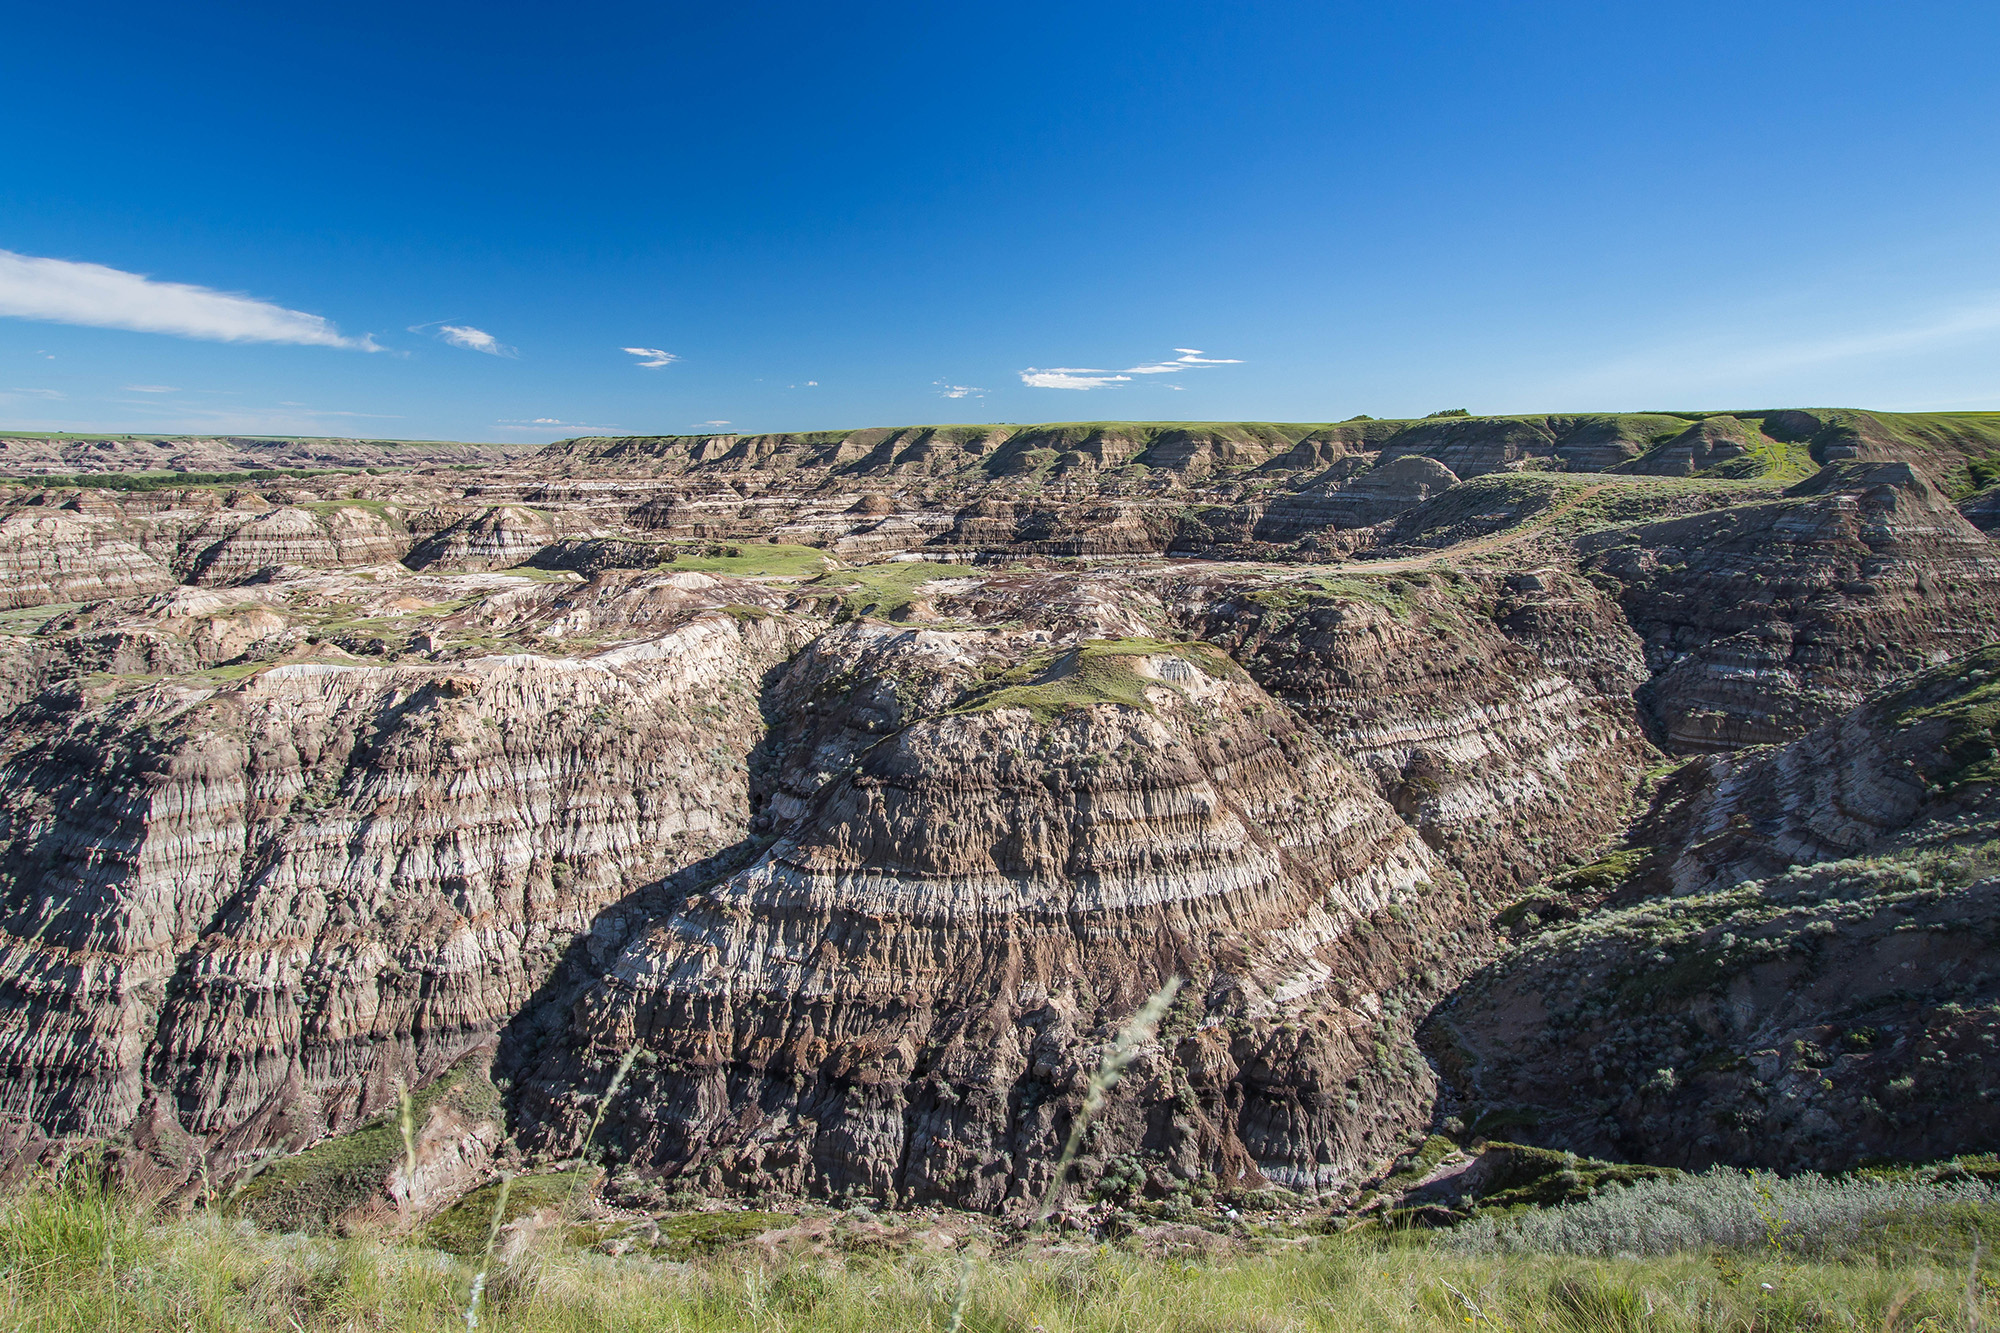 Horseshoe Canyon, les Badlands - Marie Naudon